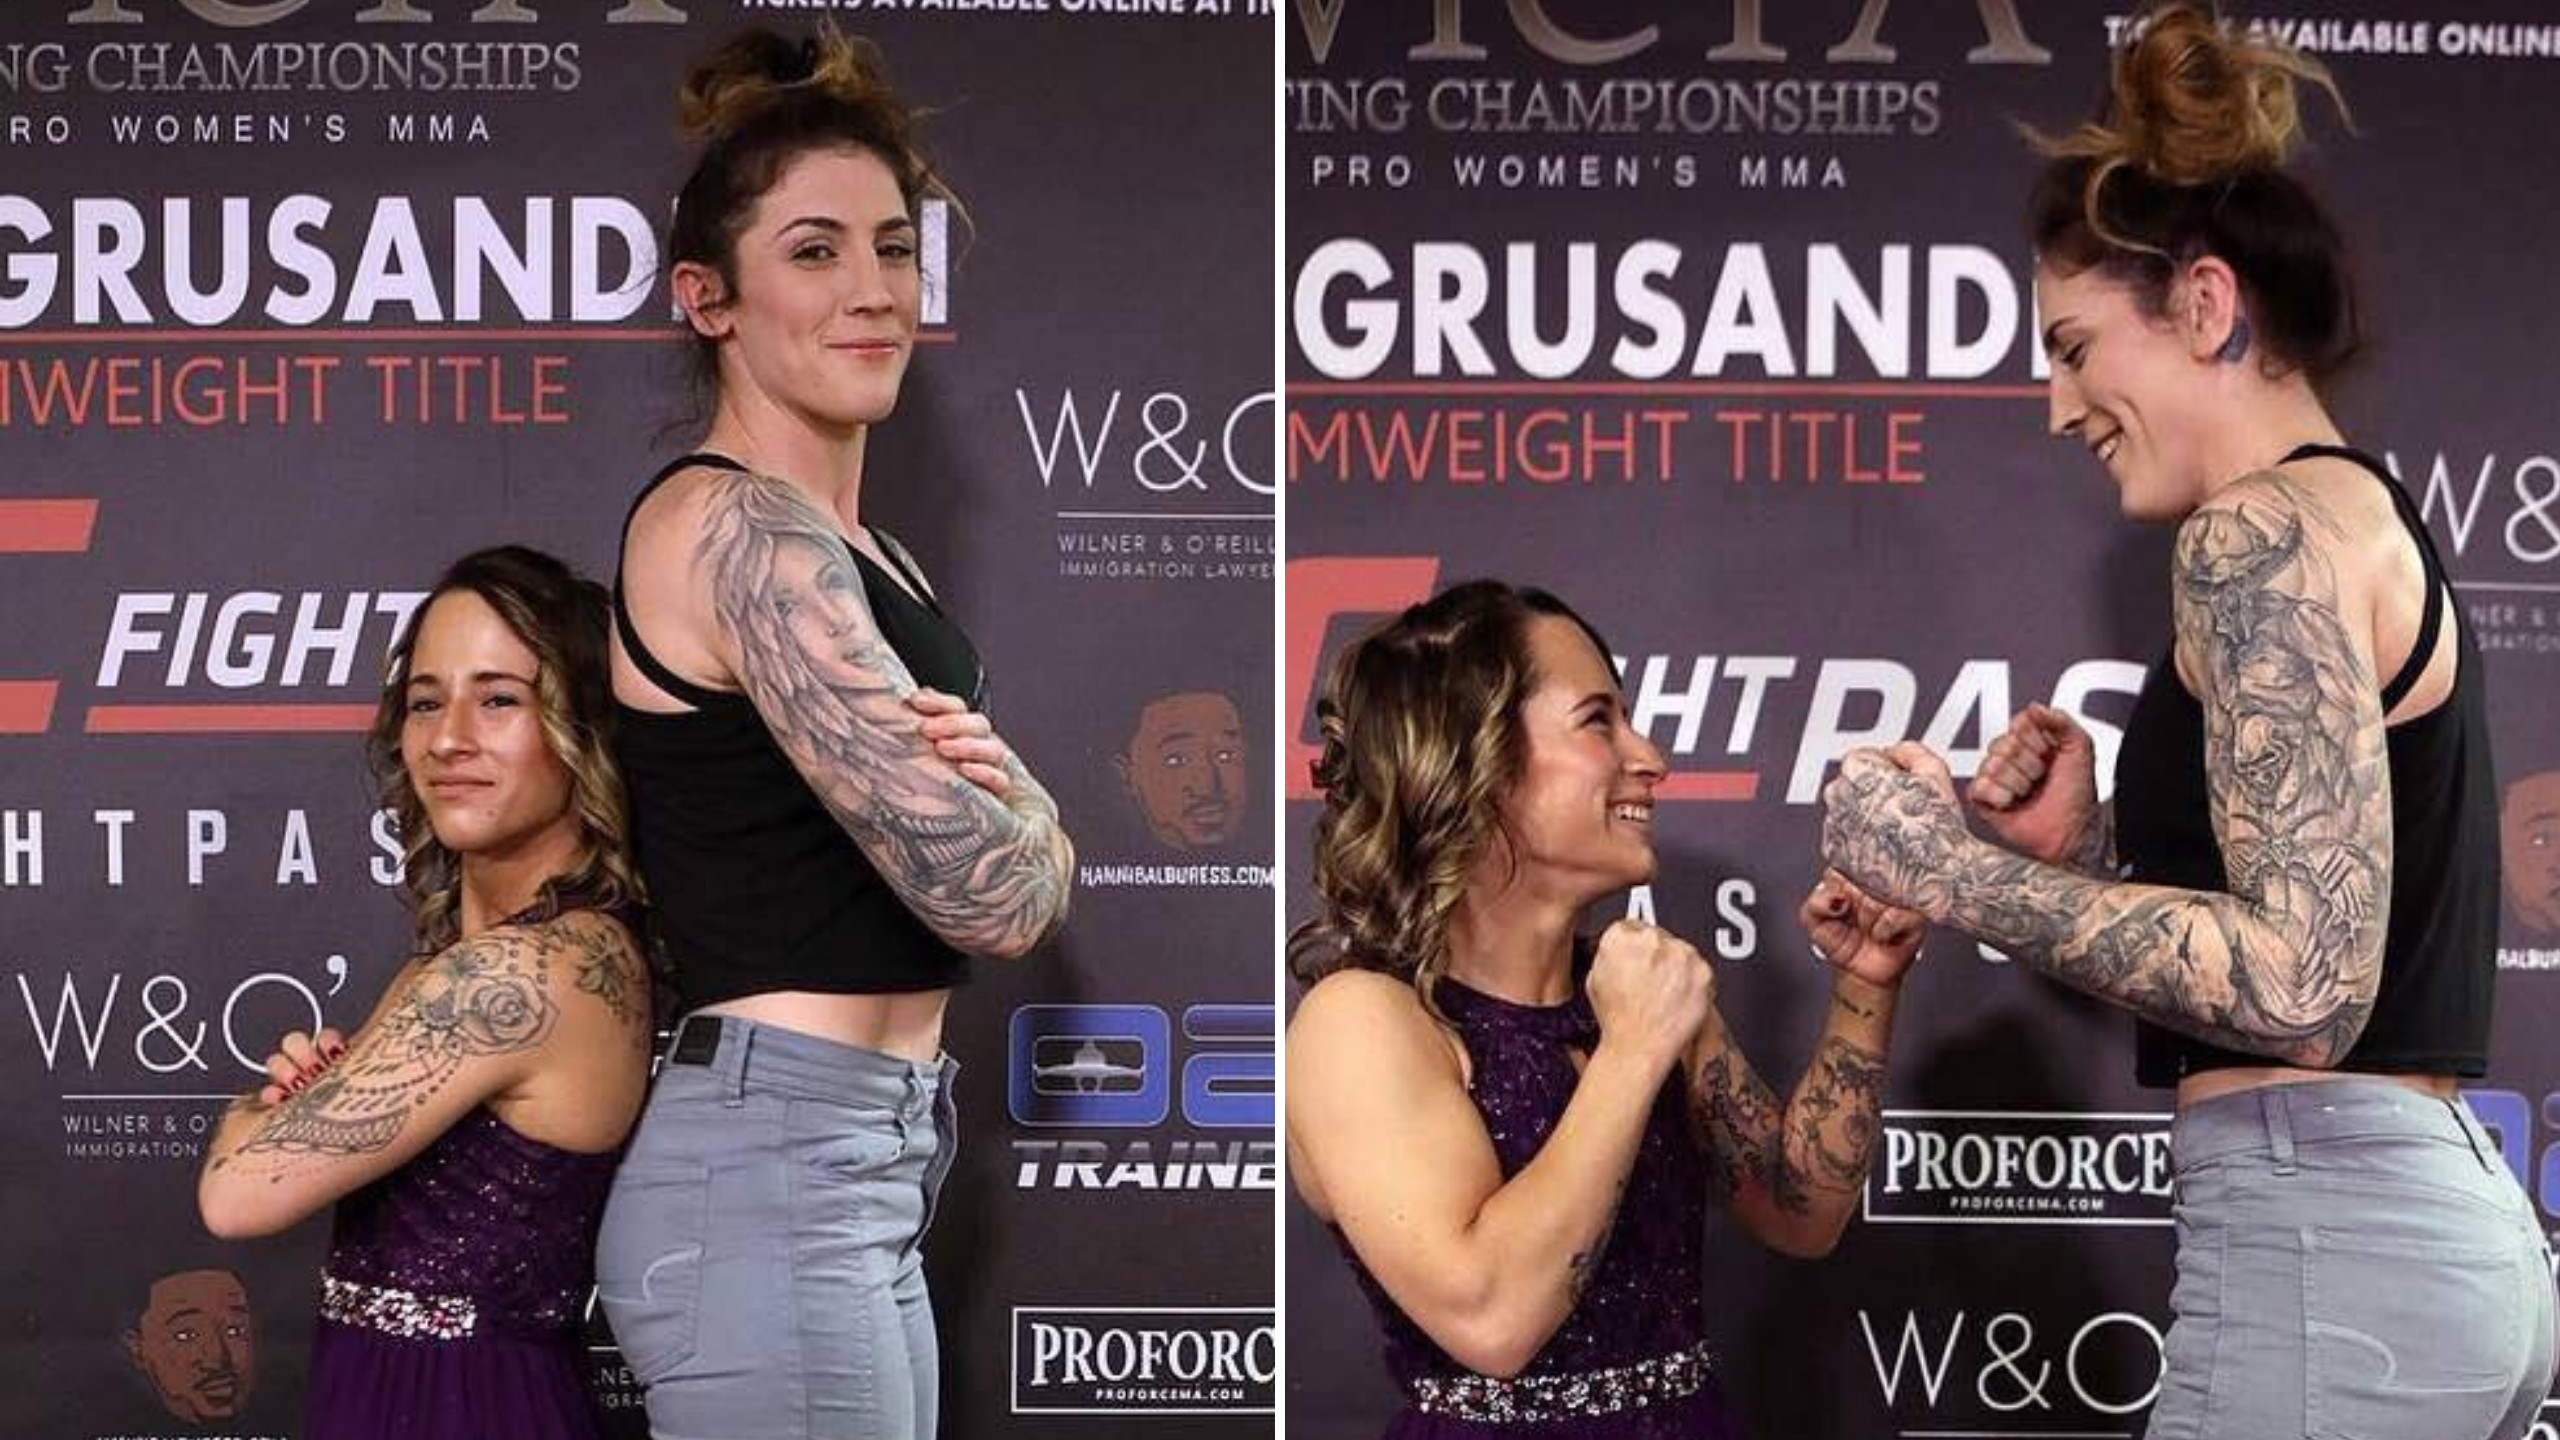 the size difference between an mma atomweight and featherweight is ridiculous sportbible sportbible